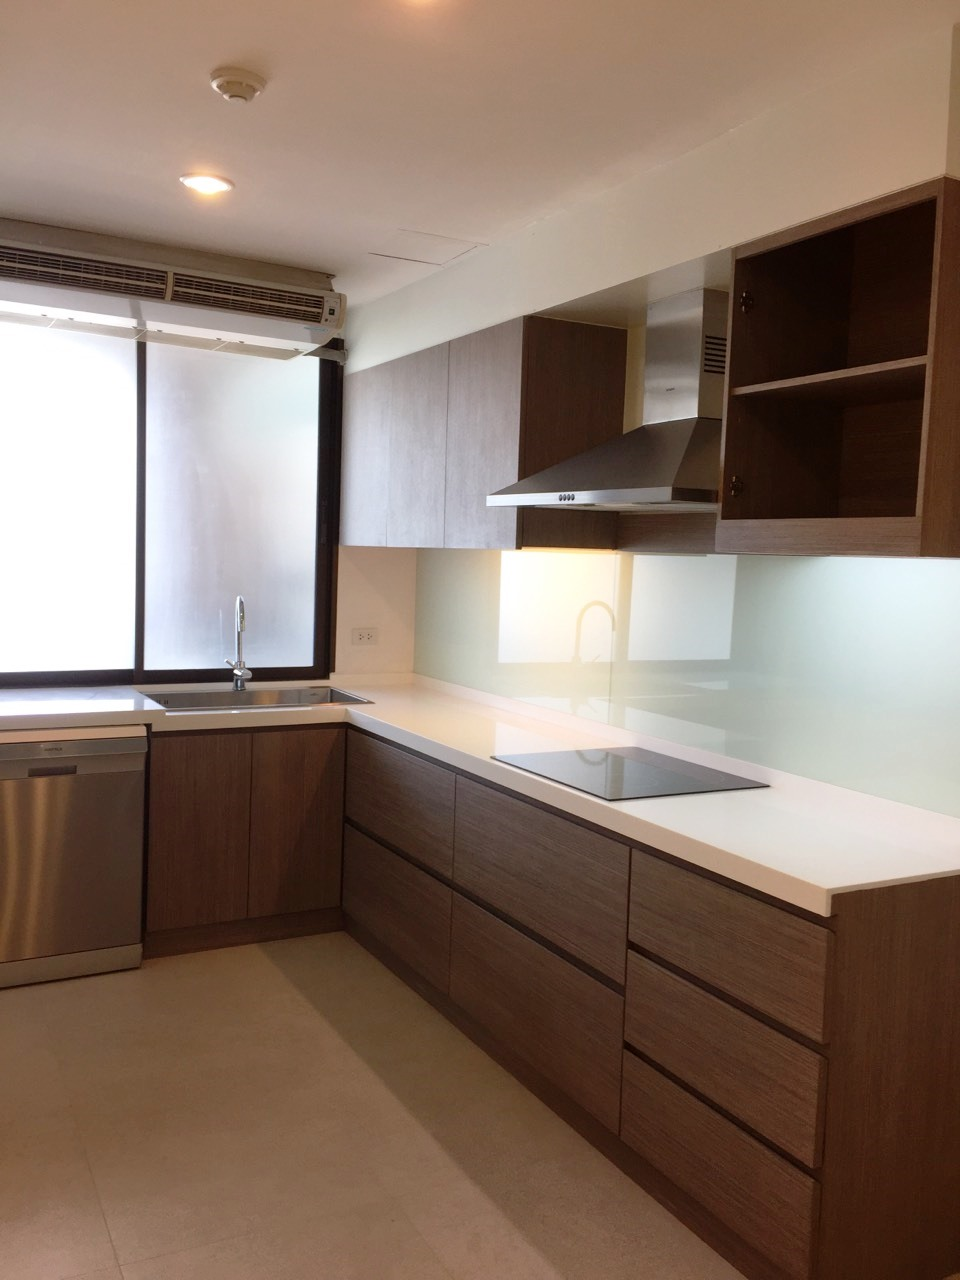 RE/MAX Properties Agency's Prime Mansion One, 3B/4B, MRT Petchaburi, Asoke 10